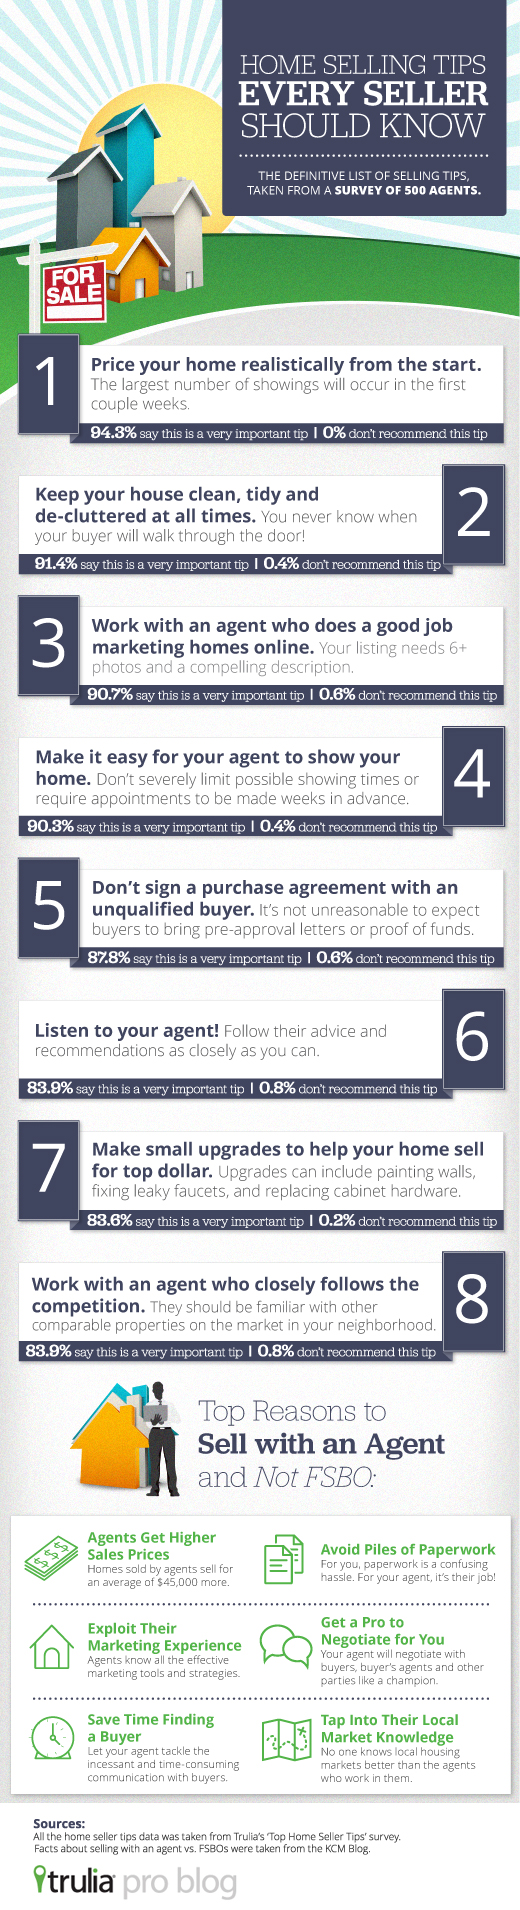 Home-Selling-Tips-Every-Seller-Should-Know